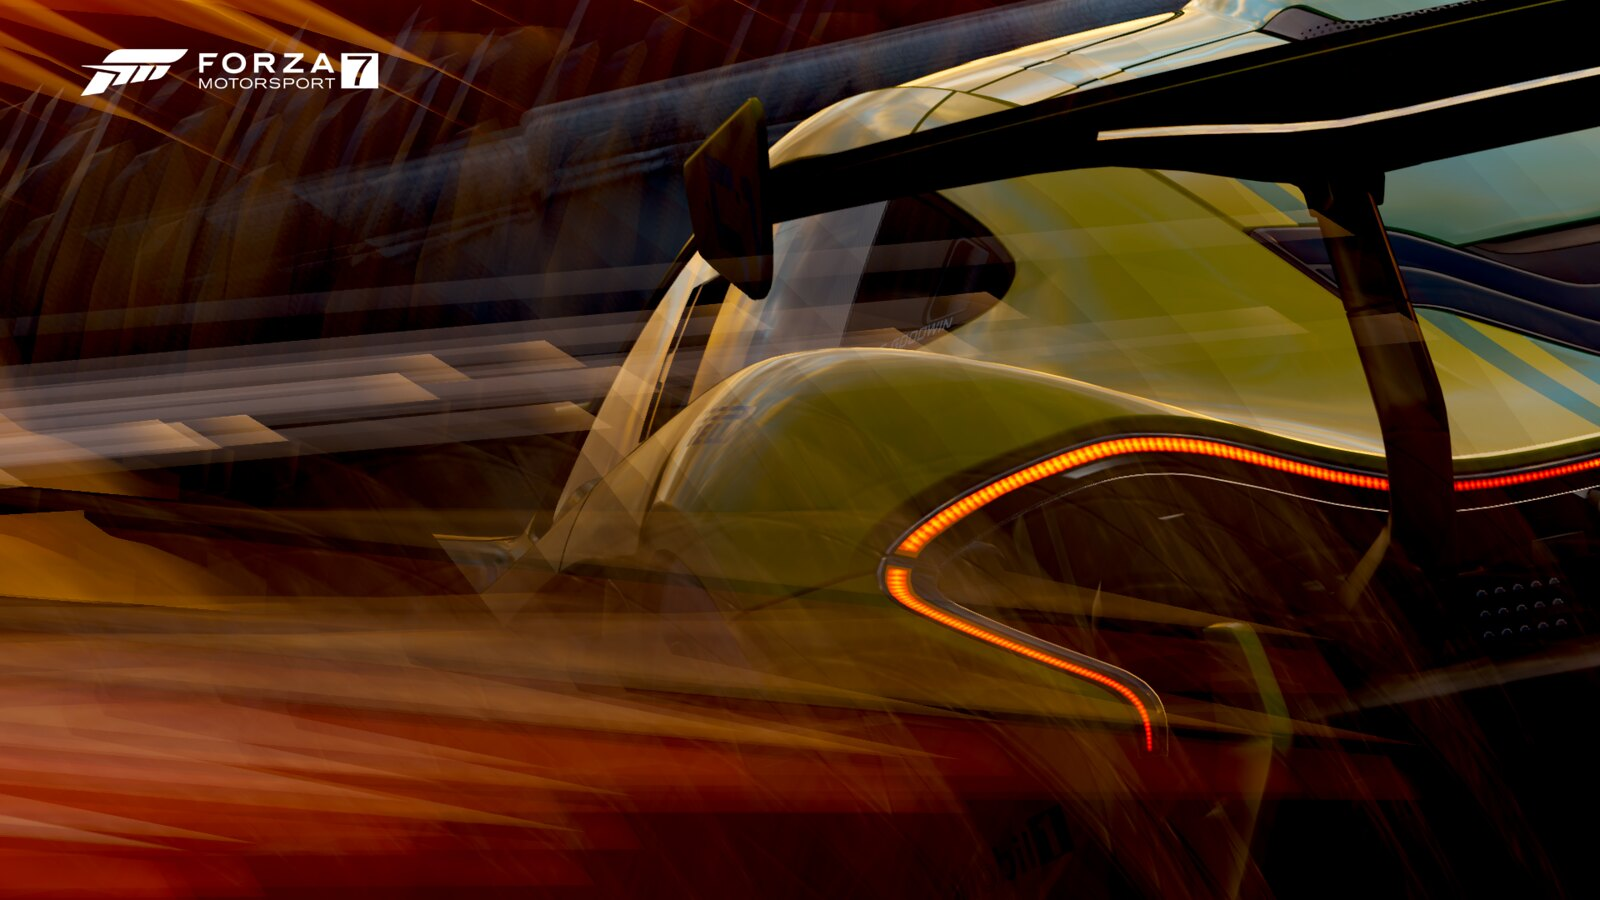 38923717580_2c2a841851_h ForzaMotorsport.fr